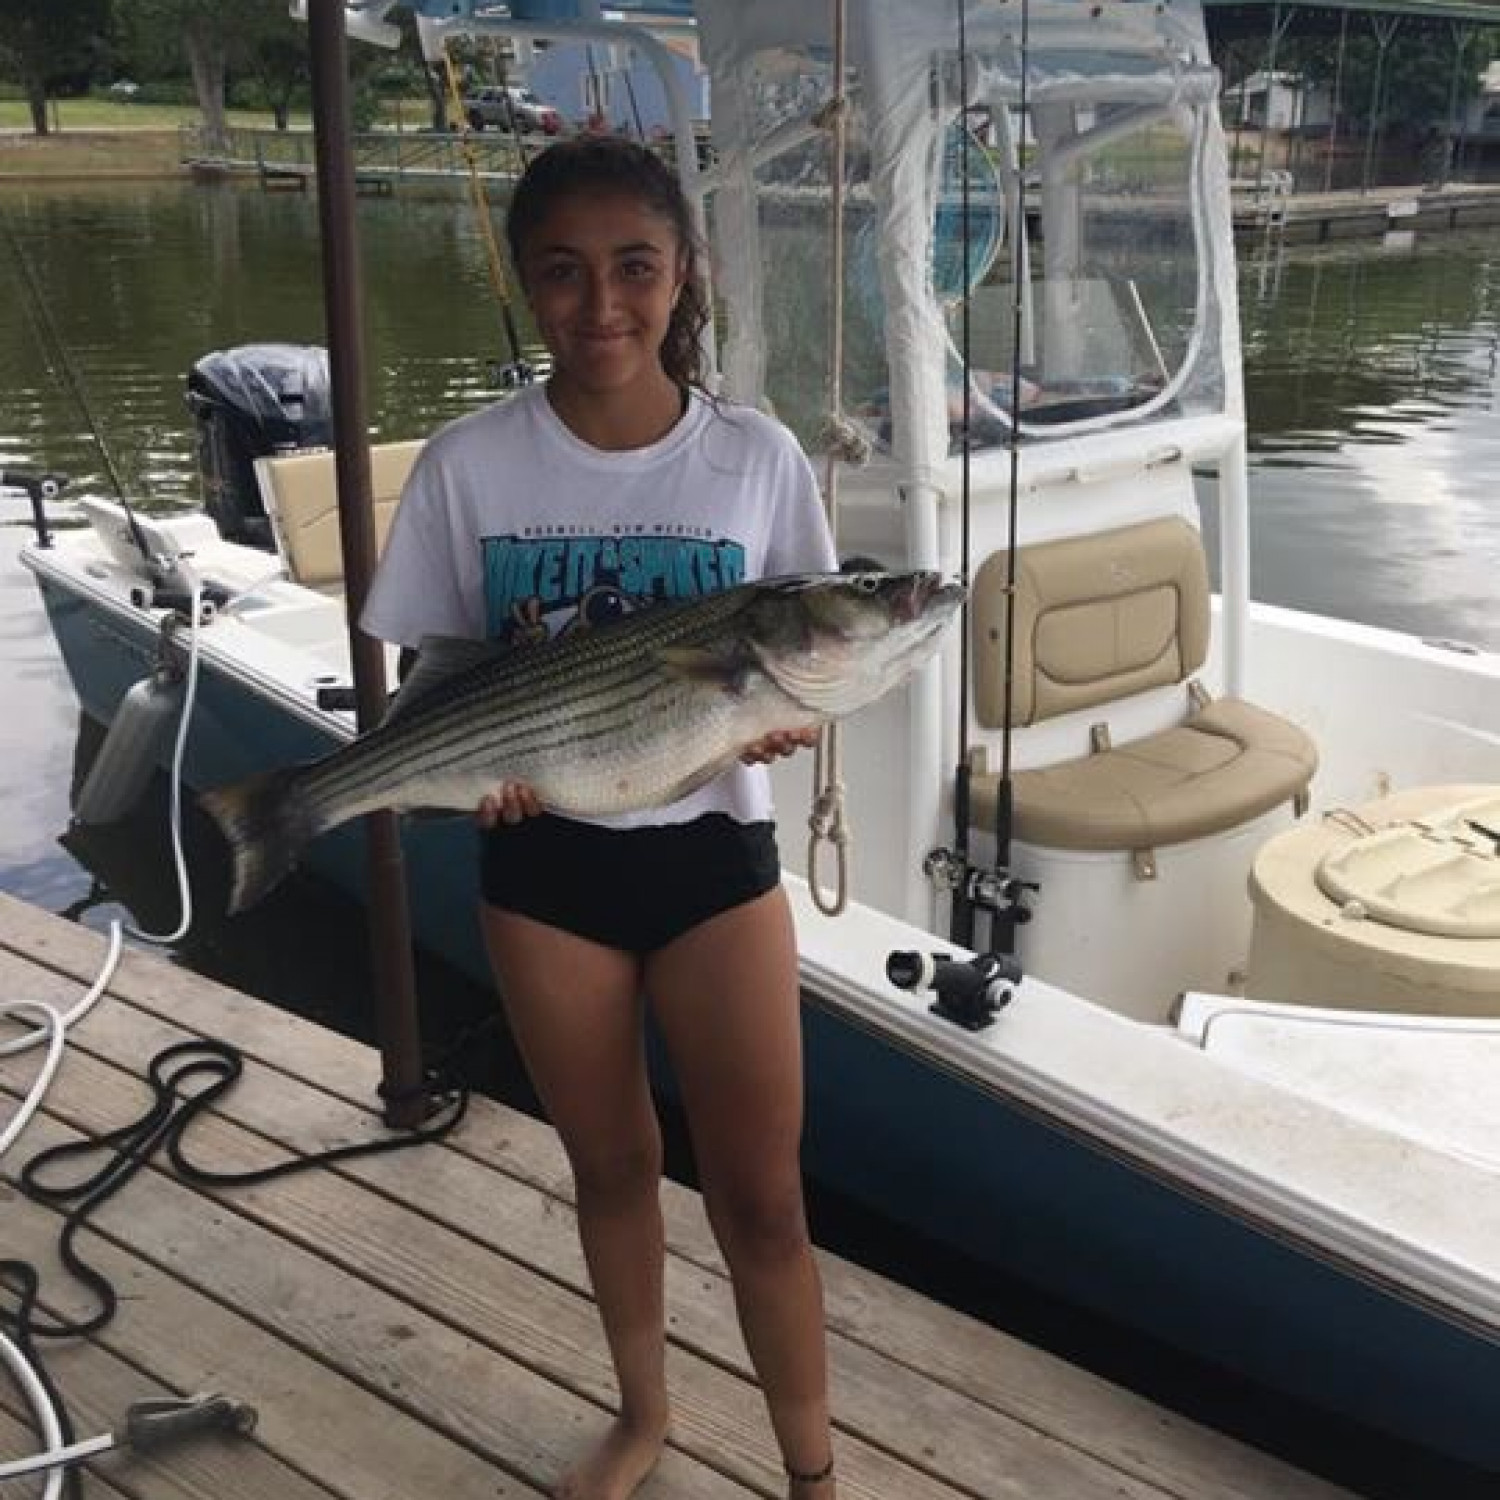 Title: Young lady with striper - On board their Sportsman Masters 247 Bay Boat - Location: Possum Kindon Texas. Participating in the Photo Contest #SportsmanFebruary2018